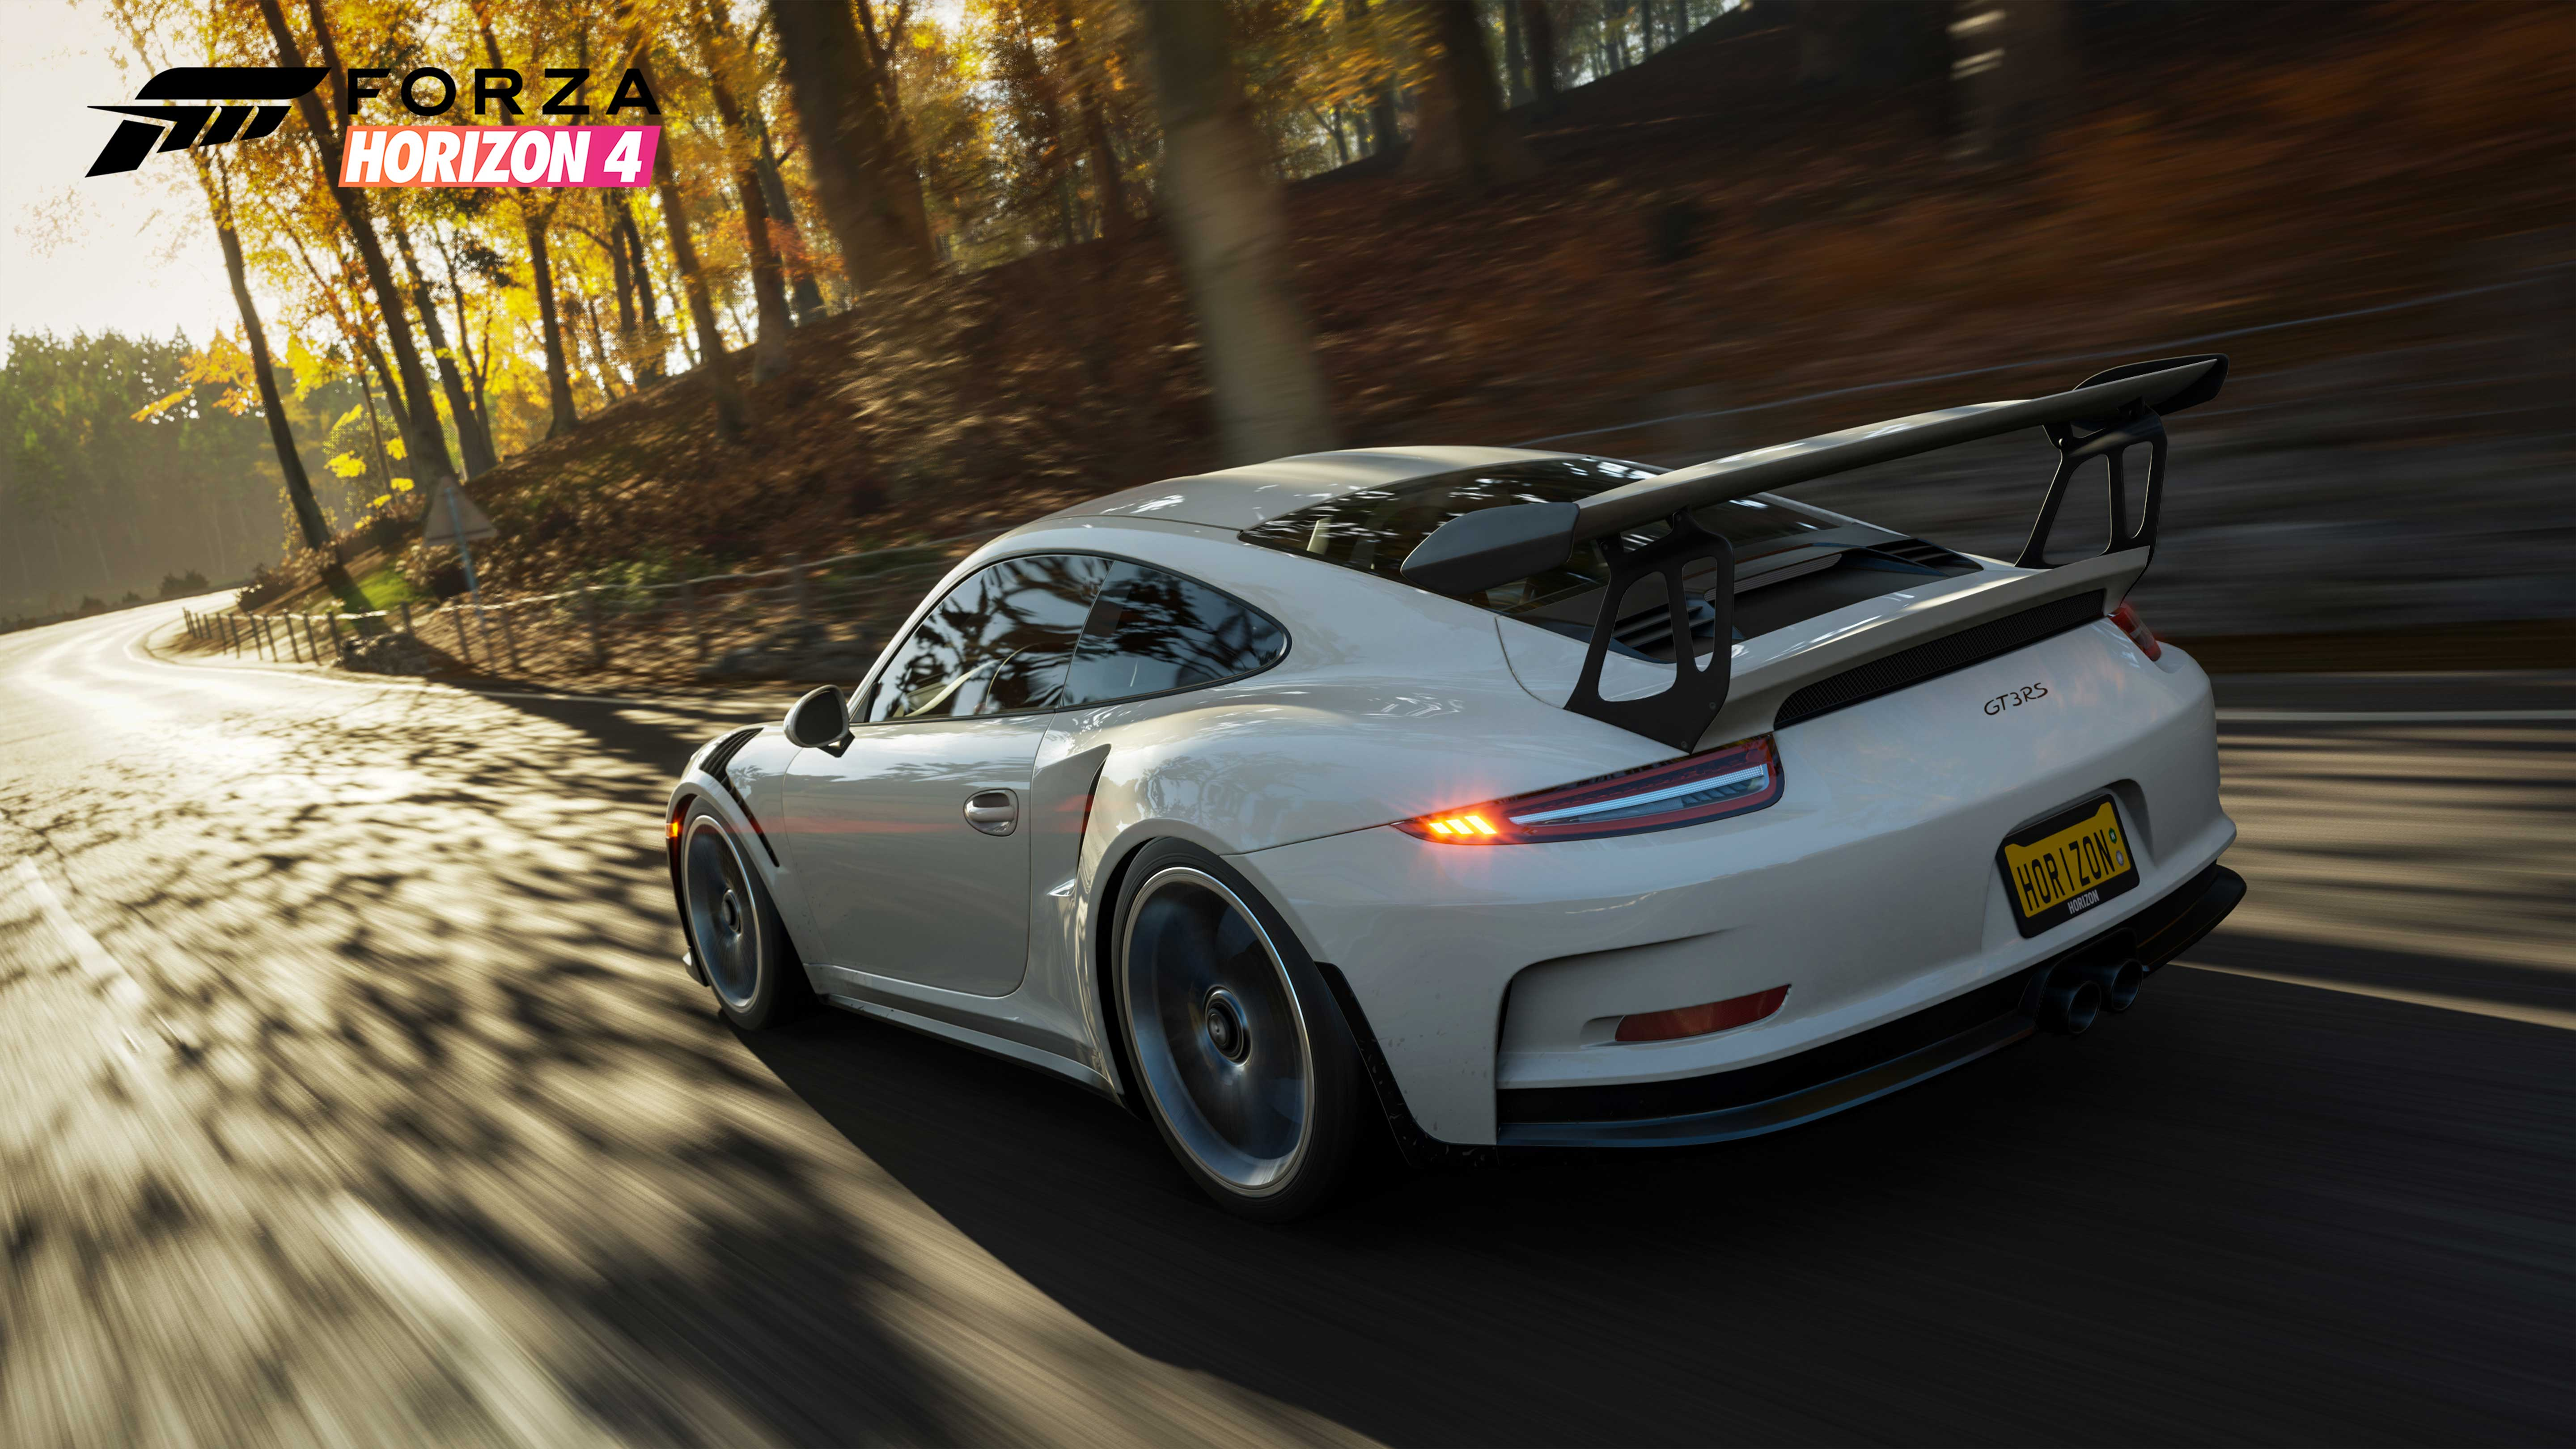 Forza horizon 4 gt3 rs 5k hd games 4k wallpapers images backgrounds photos and pictures - Forza logo wallpaper ...